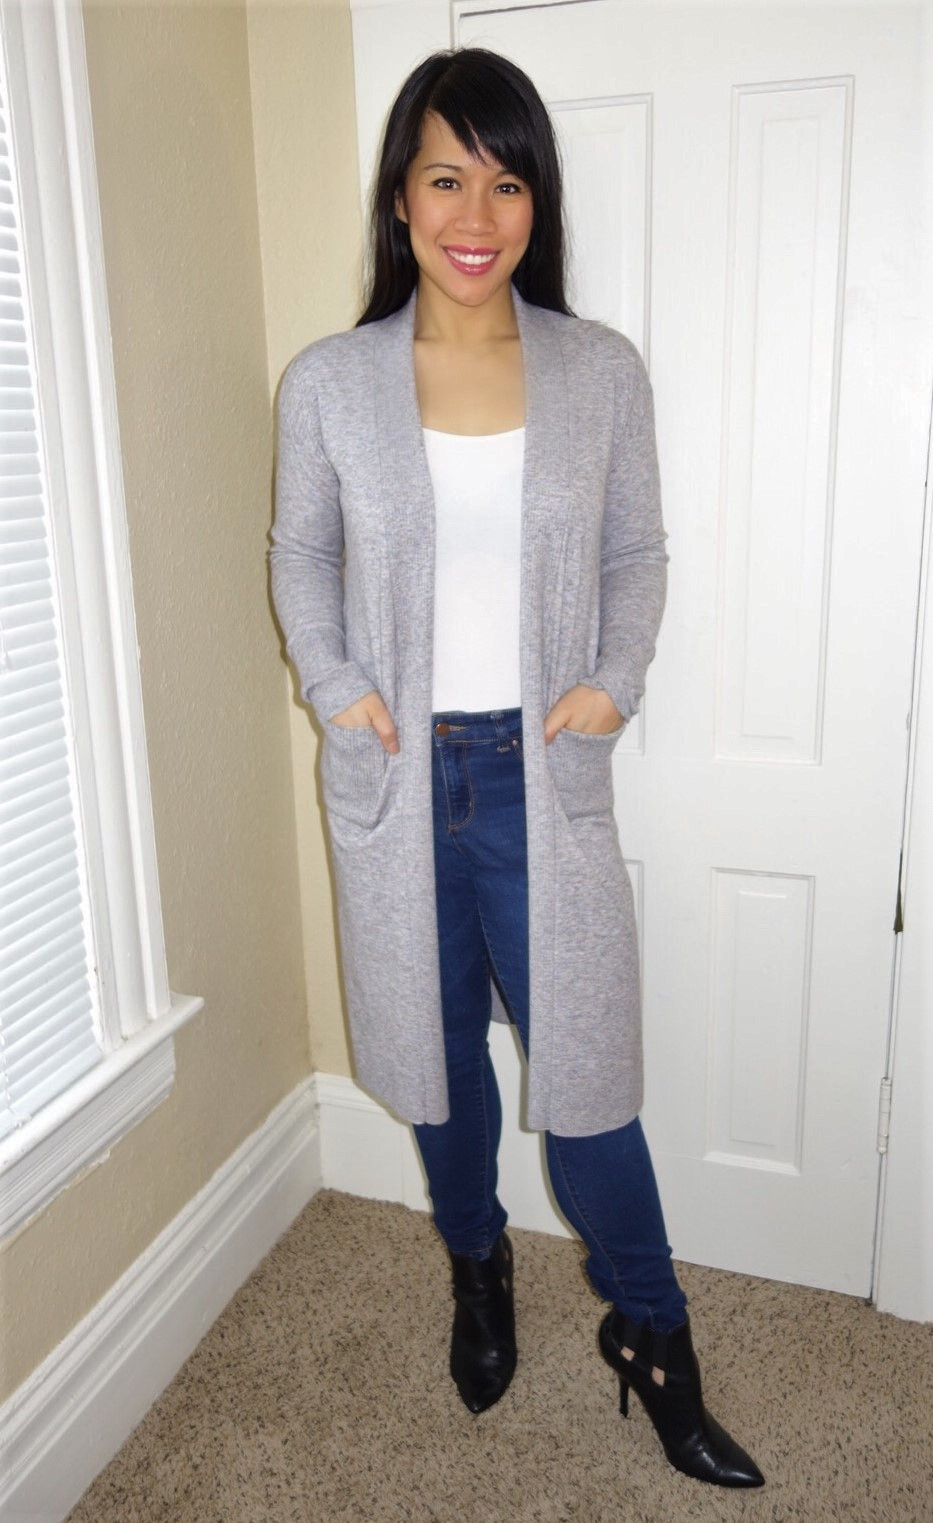 Kat wearing a grey duster, white tank, and blue jeans to illustrate minimalist style